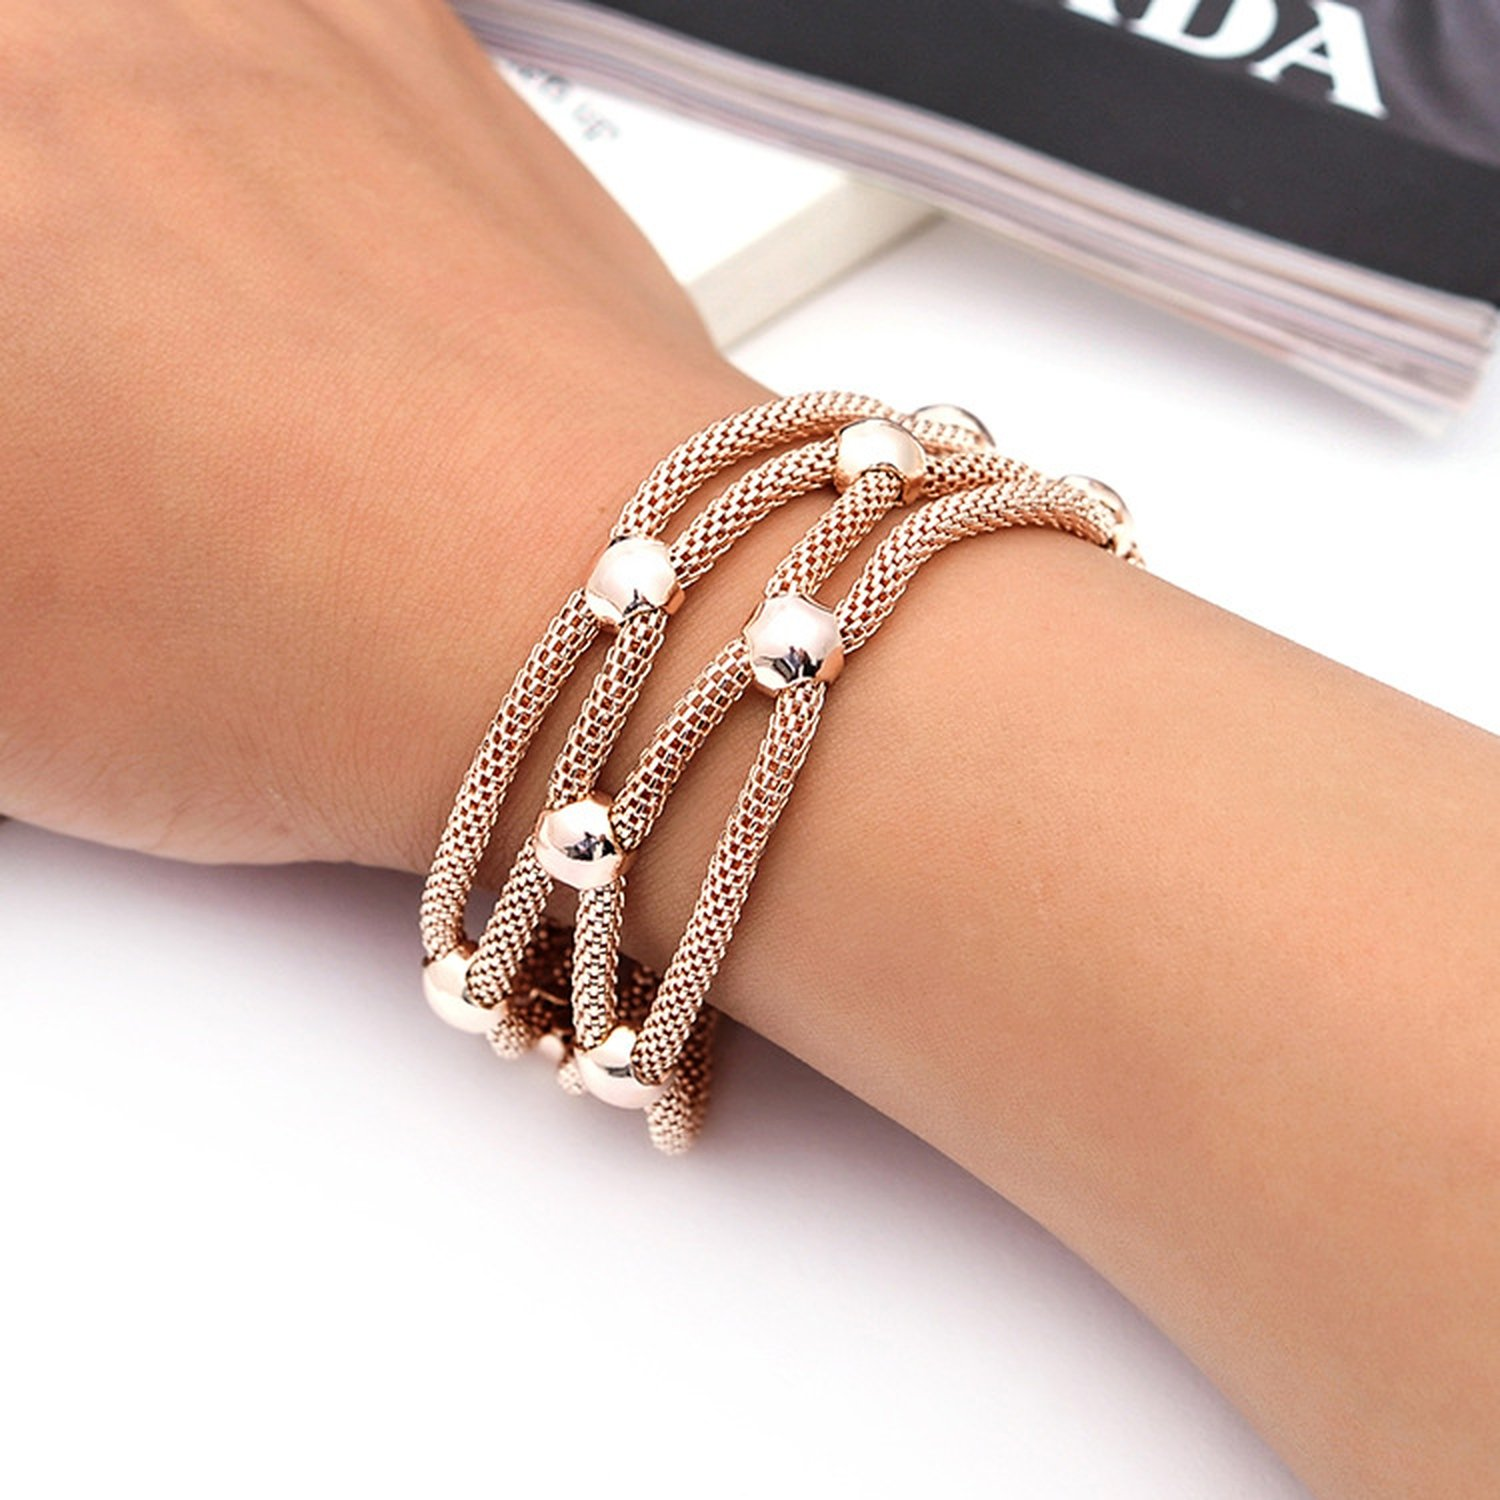 supply fashion simple hollow jewelry magnet buckle alloy rhinestone bracelet Yiwu Small Commodity,Rose gold